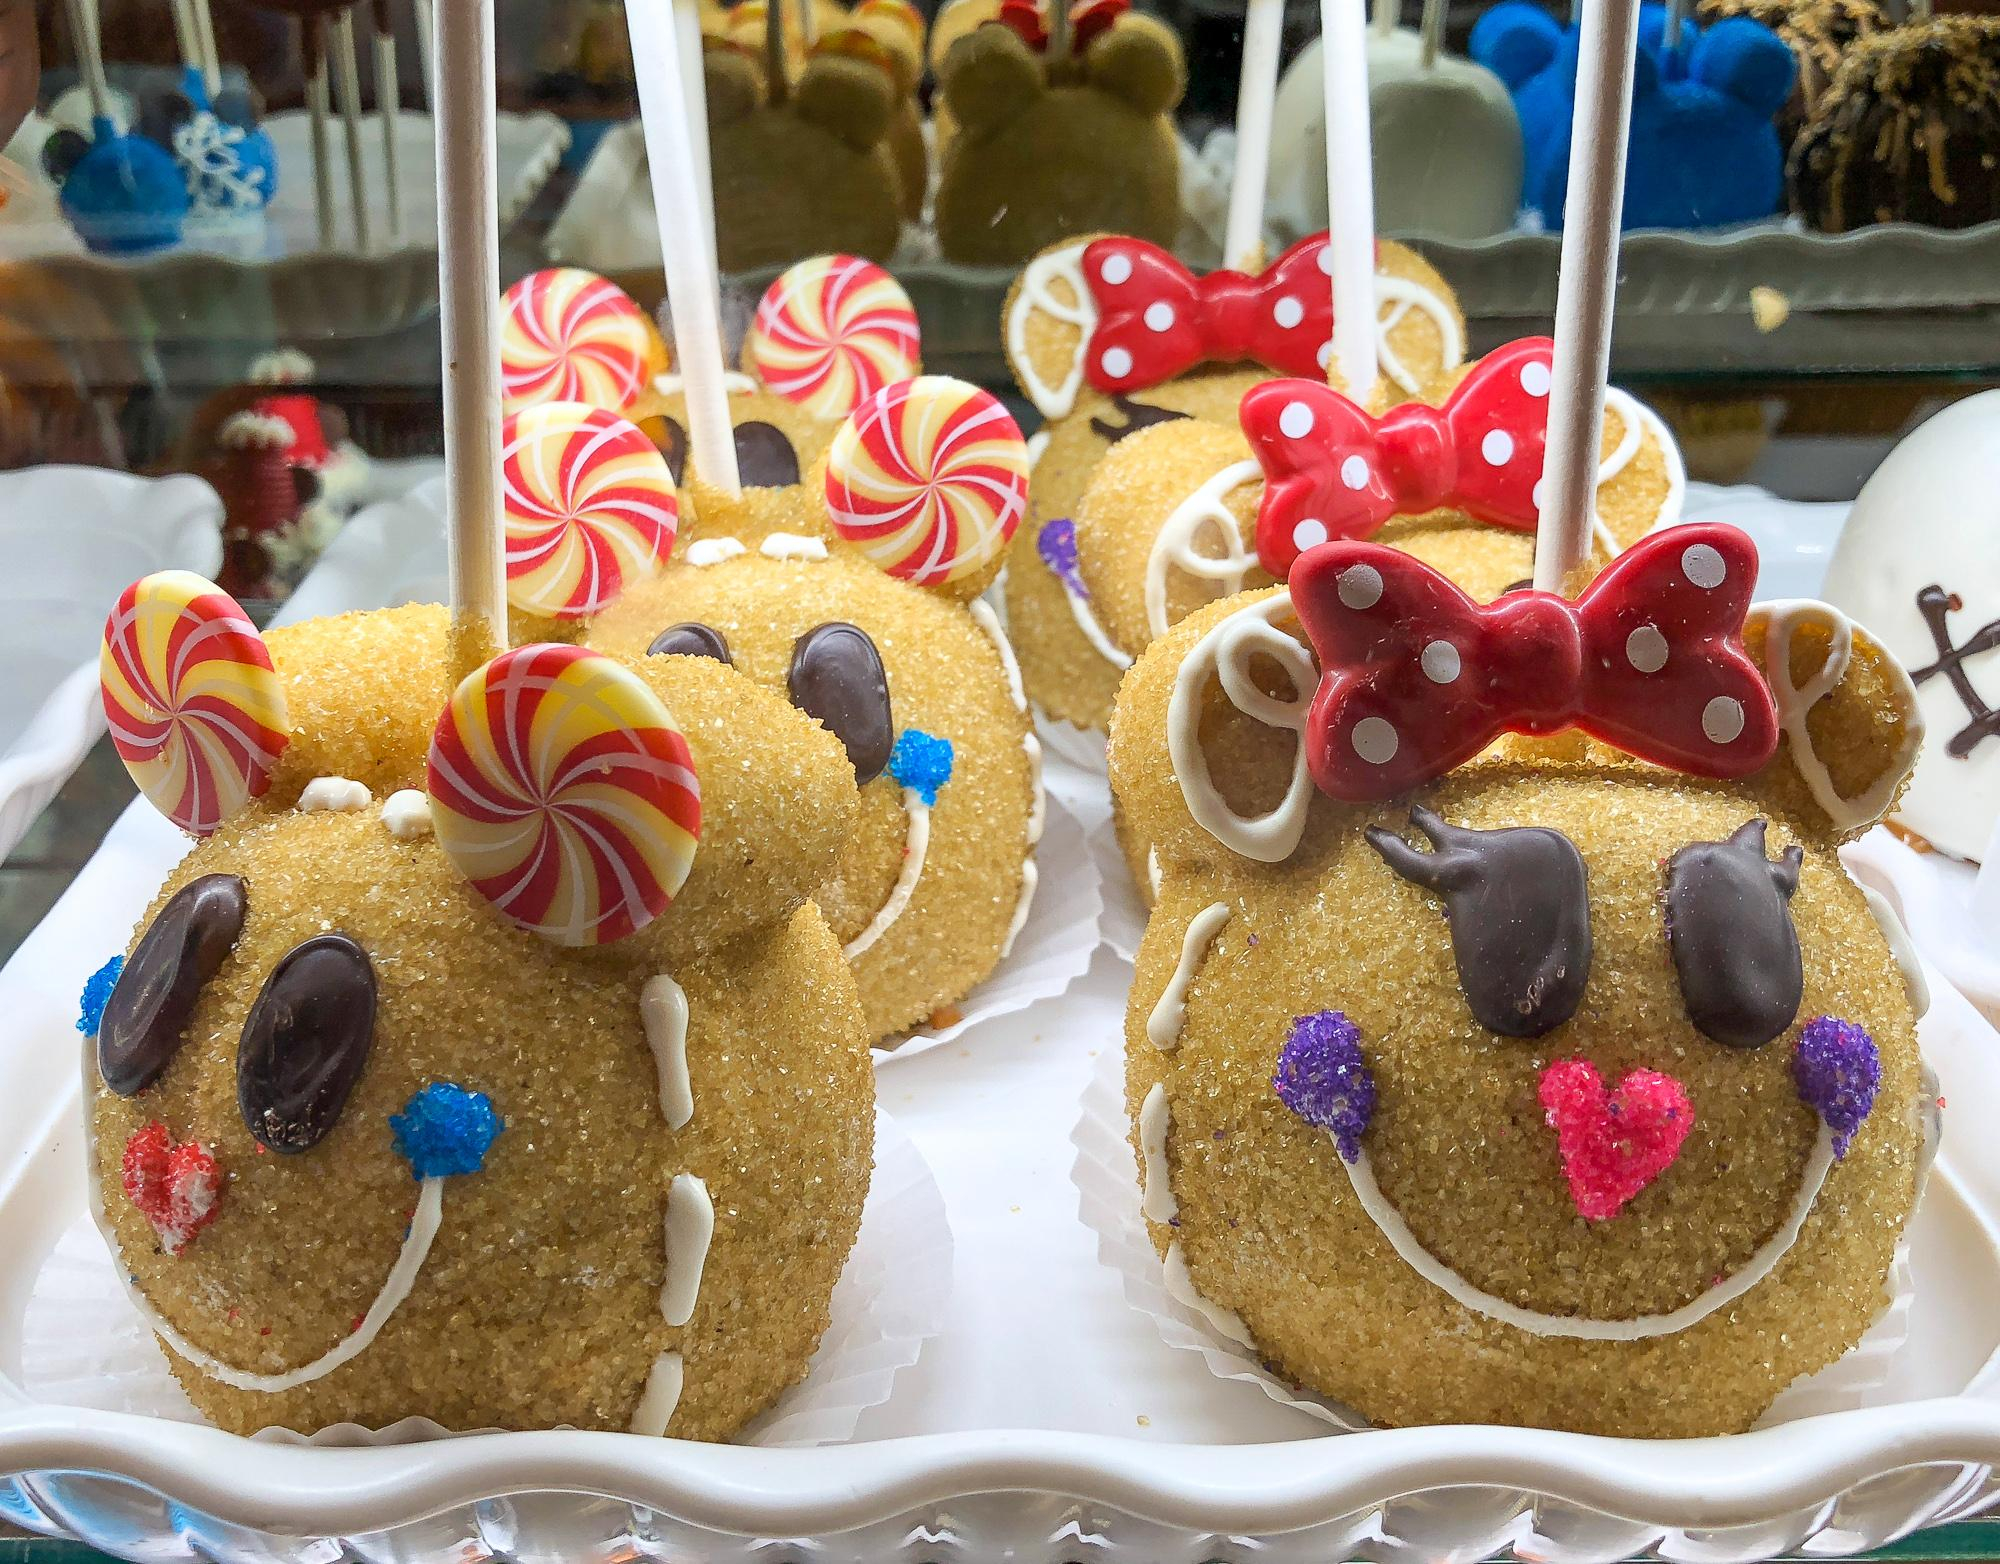 Holiday-themed candied apples at Disneyland